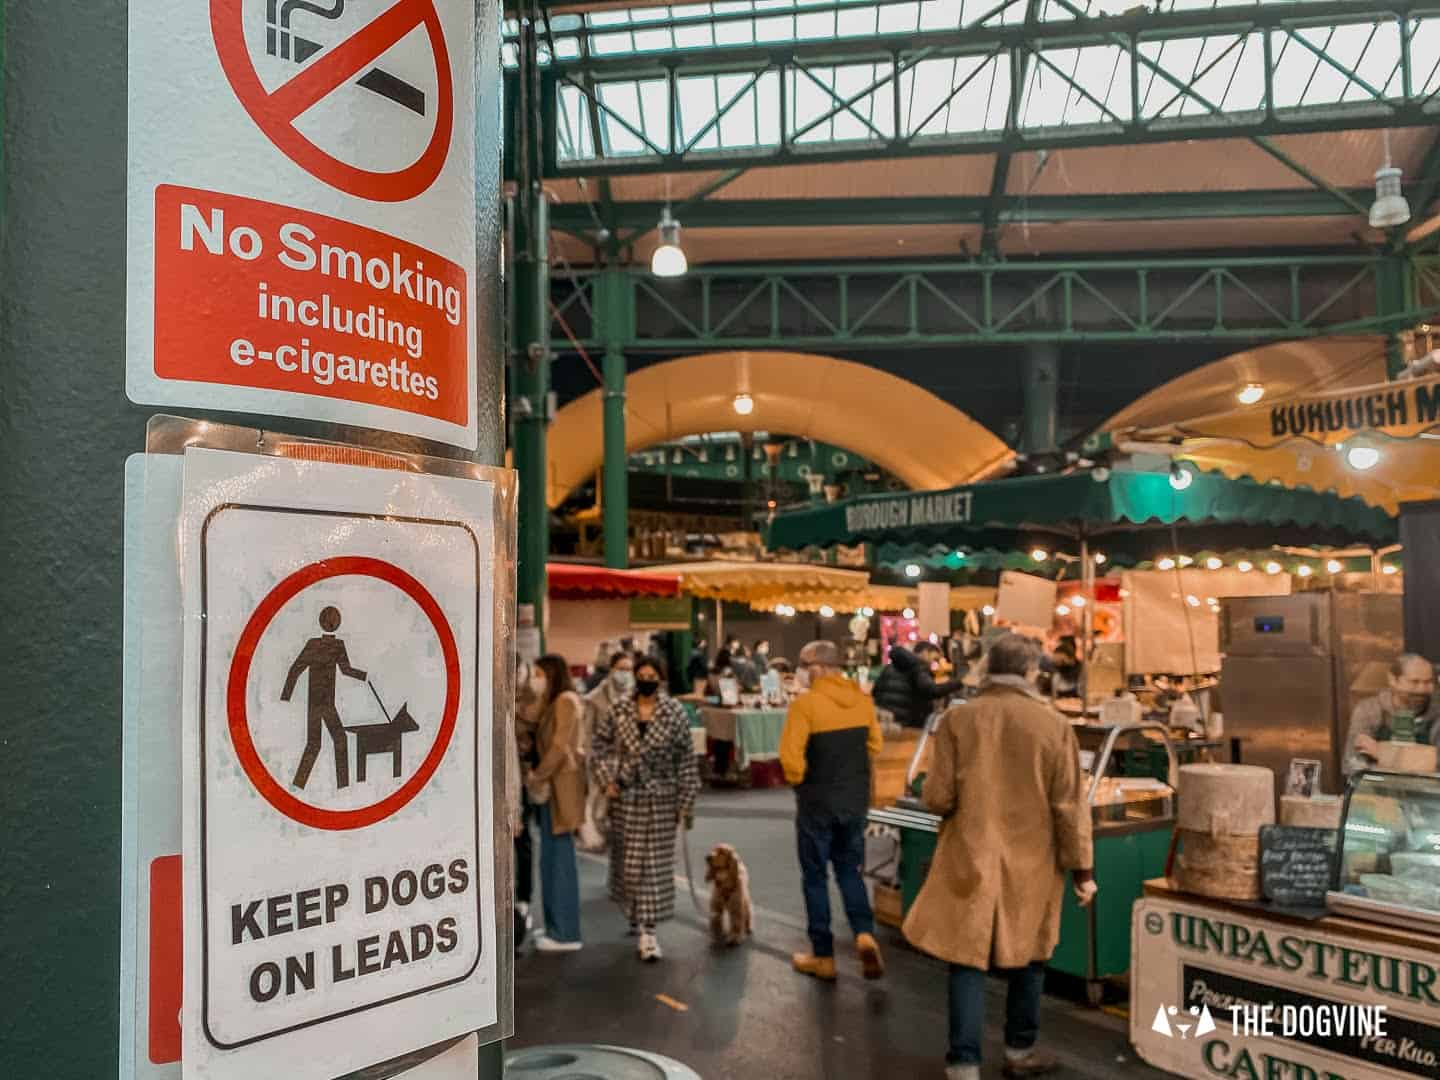 Dogs Are Allowed on Leads at Borough Market